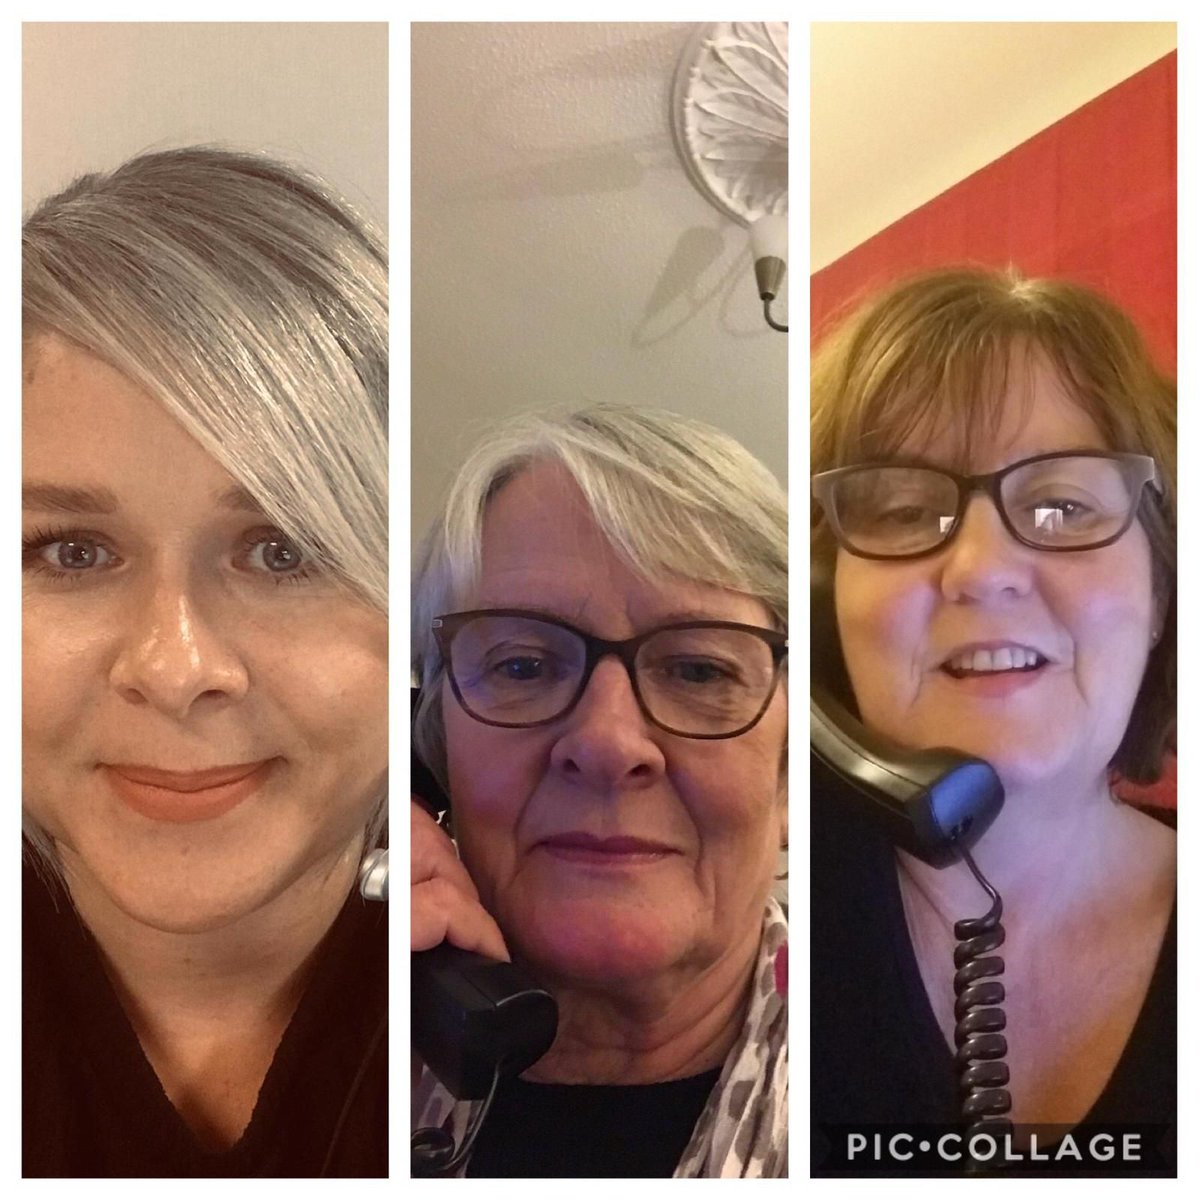 Meet Andrea, Sandie and Dee: 3 of our fantastic Relate counsellors ready to take your Live Chats and calls for FREE this evening. Theyre here to chat all things money issues in relationships! Live Chat here buff.ly/2OG4hJu or call 01302380990 #MWord #savewellspendbetter